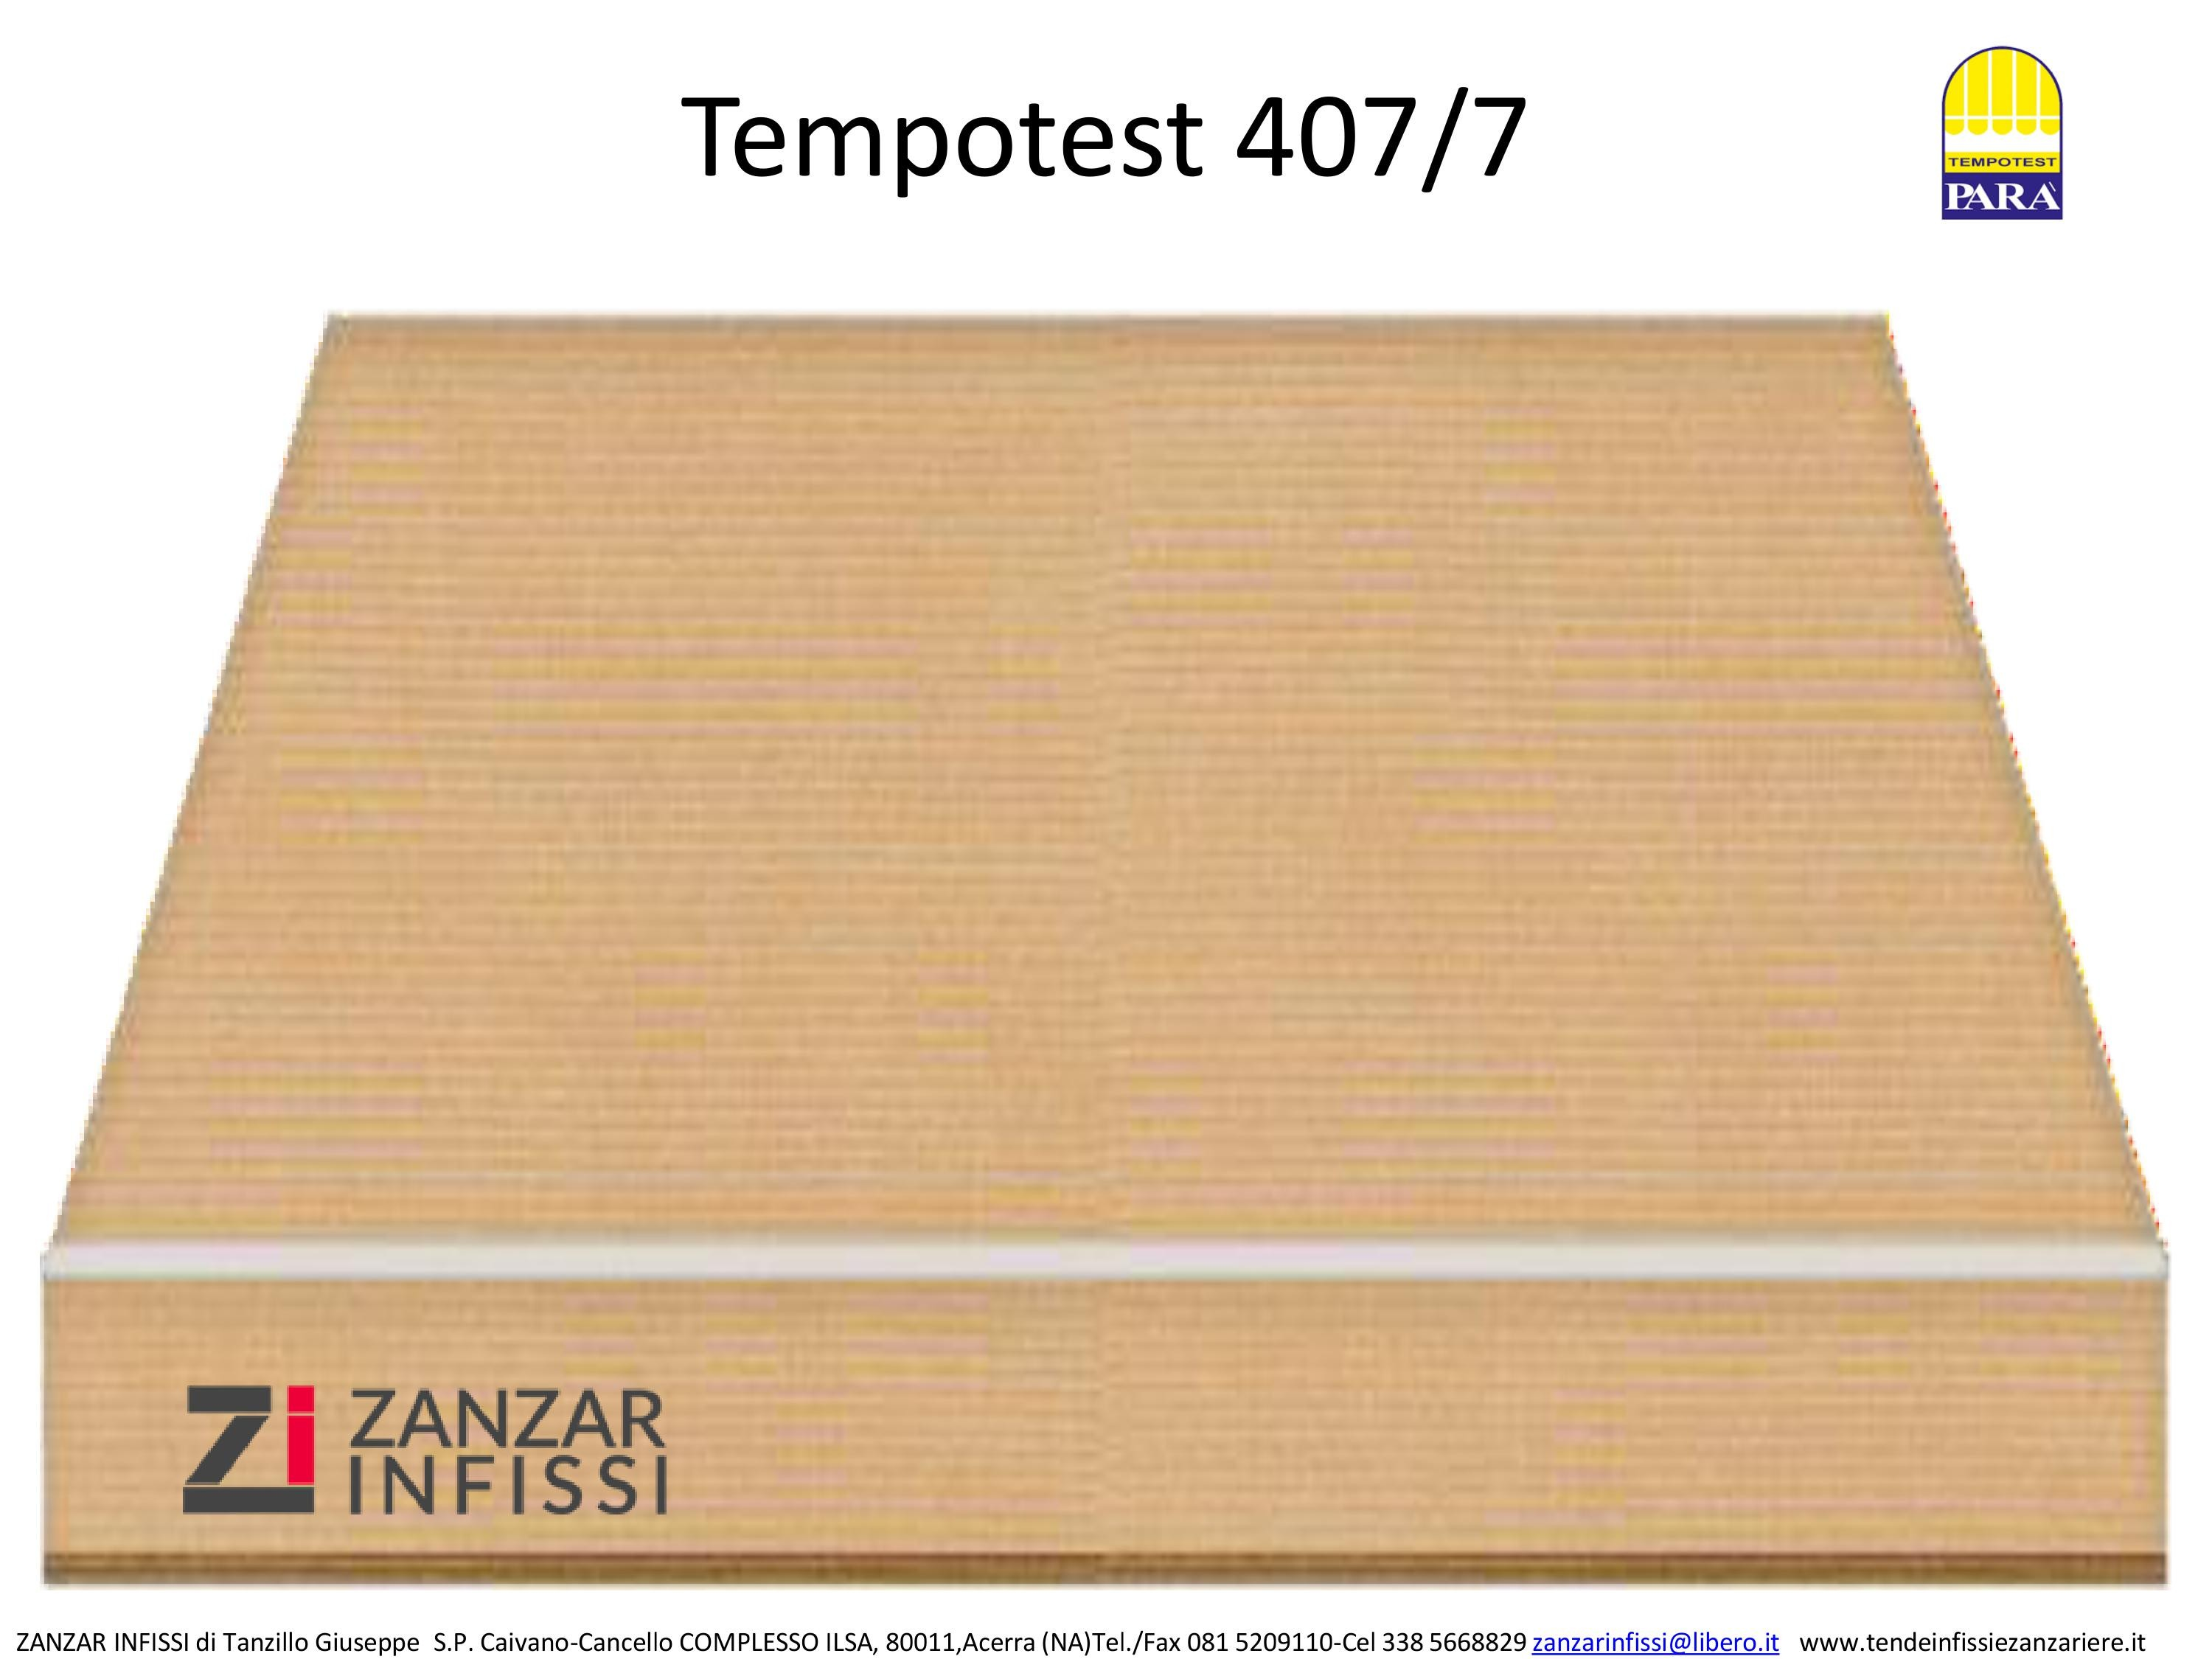 Tempotest 407/7